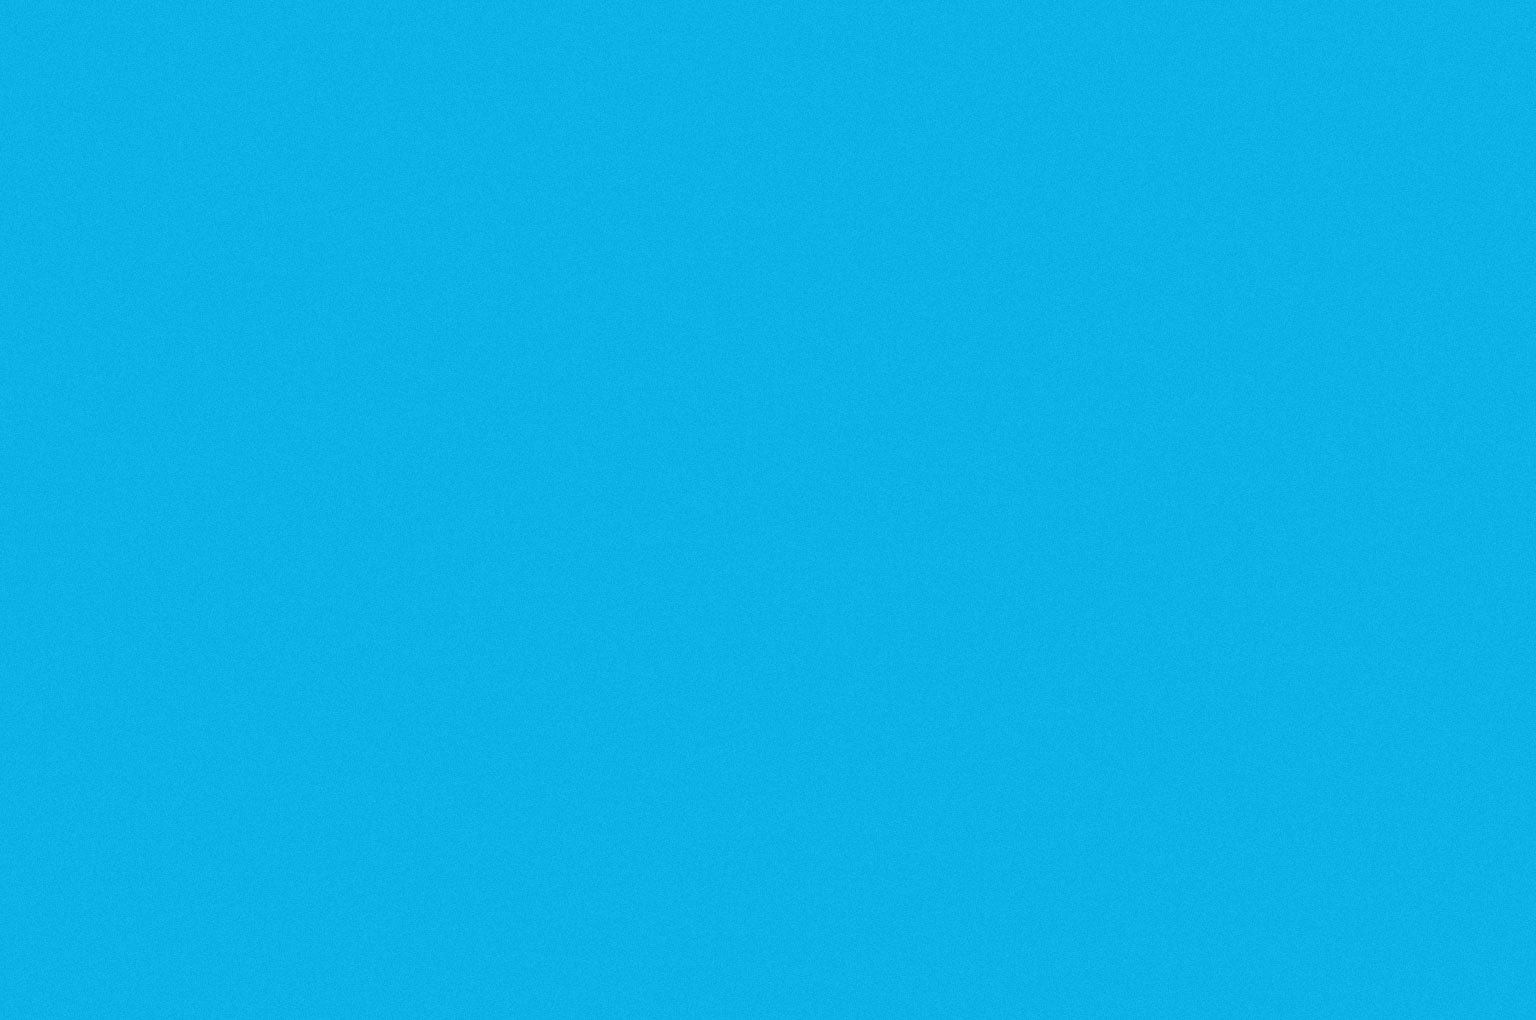 solid light blue wallpaper hd - photo #14